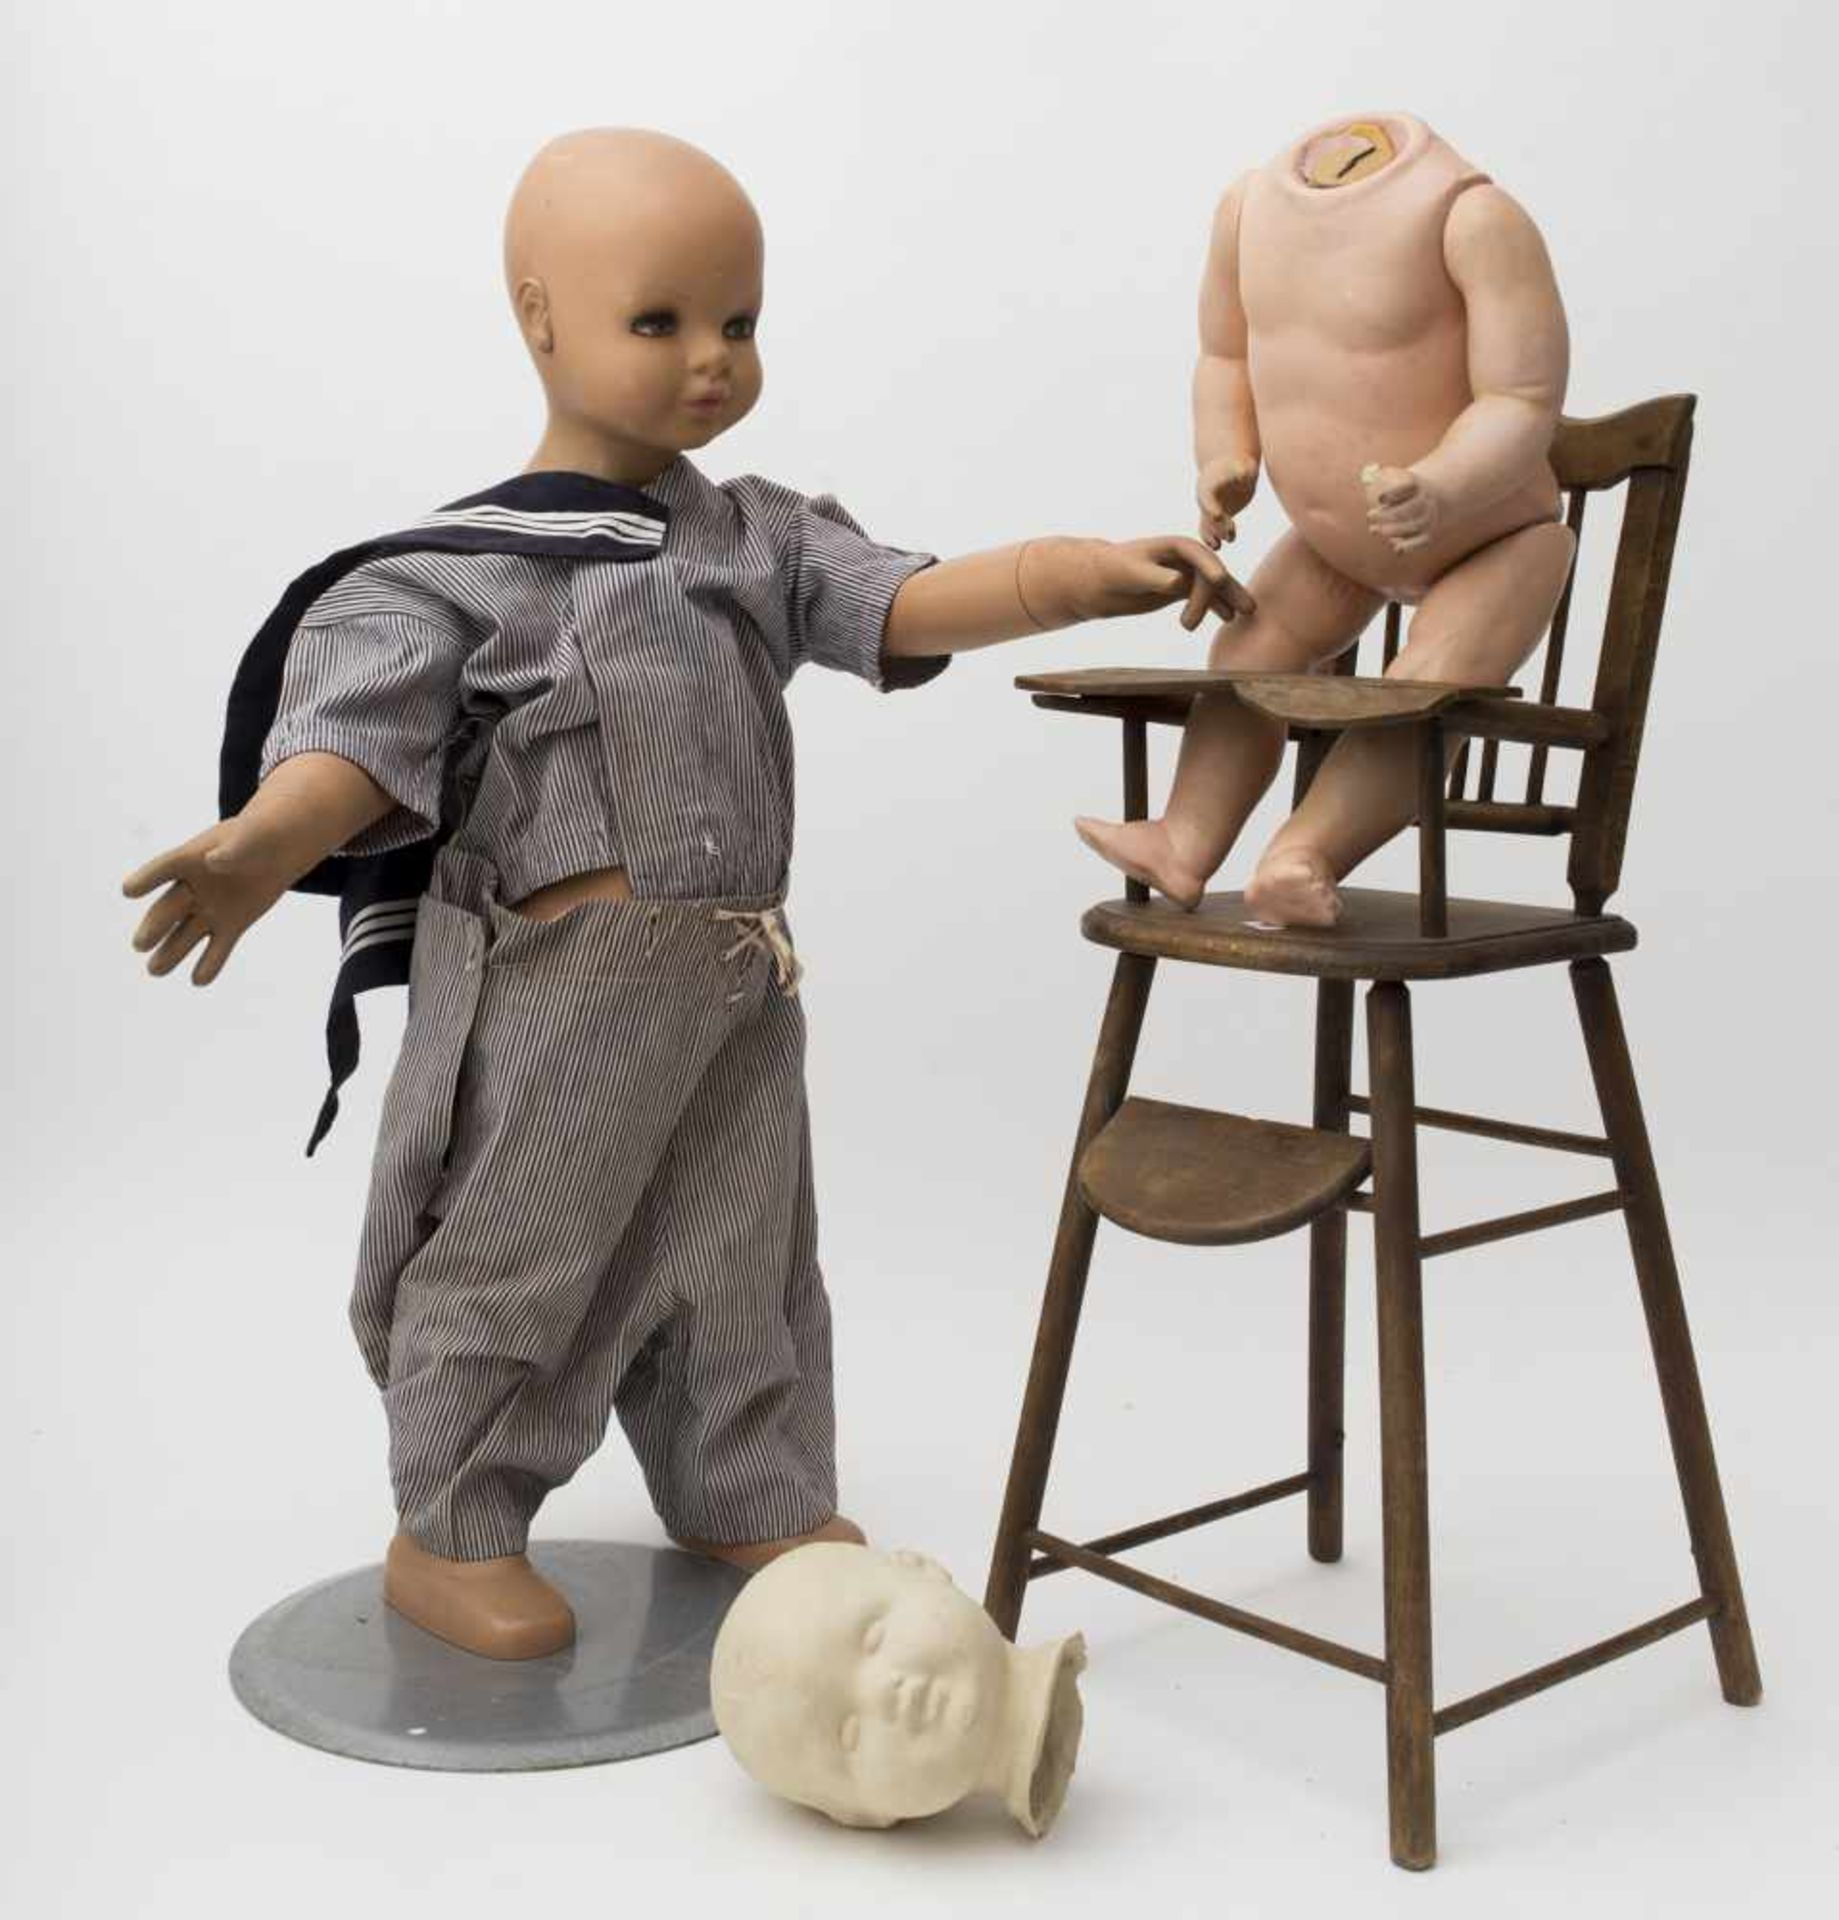 Exhibition model from the 50', Sailor's outfit, H=77cm. German baby doll body with fixed limbs, H=